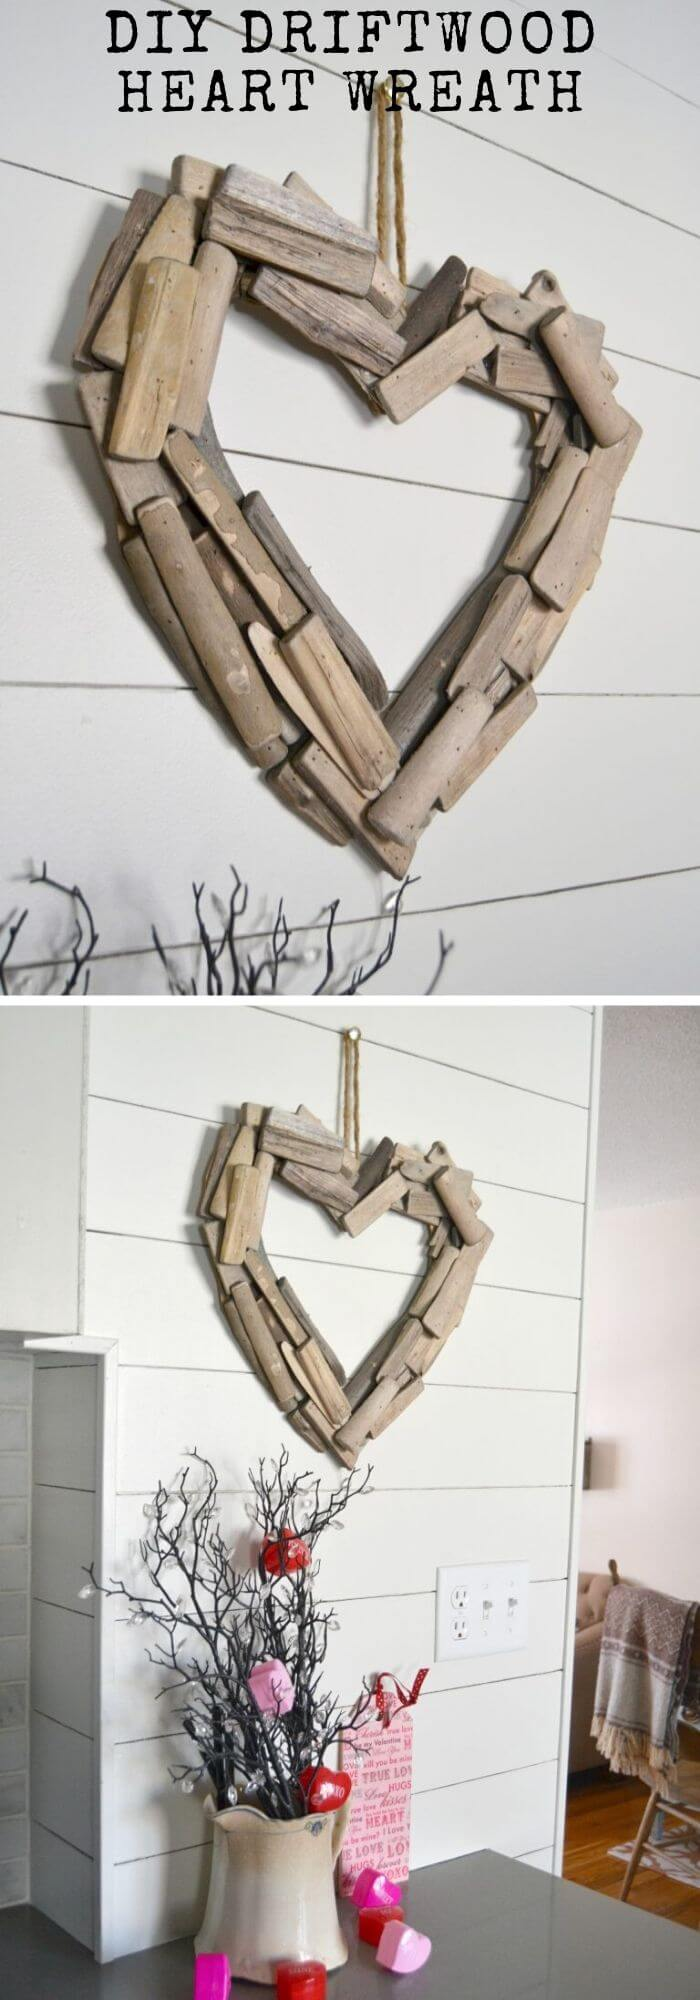 The lovely wood heart projects